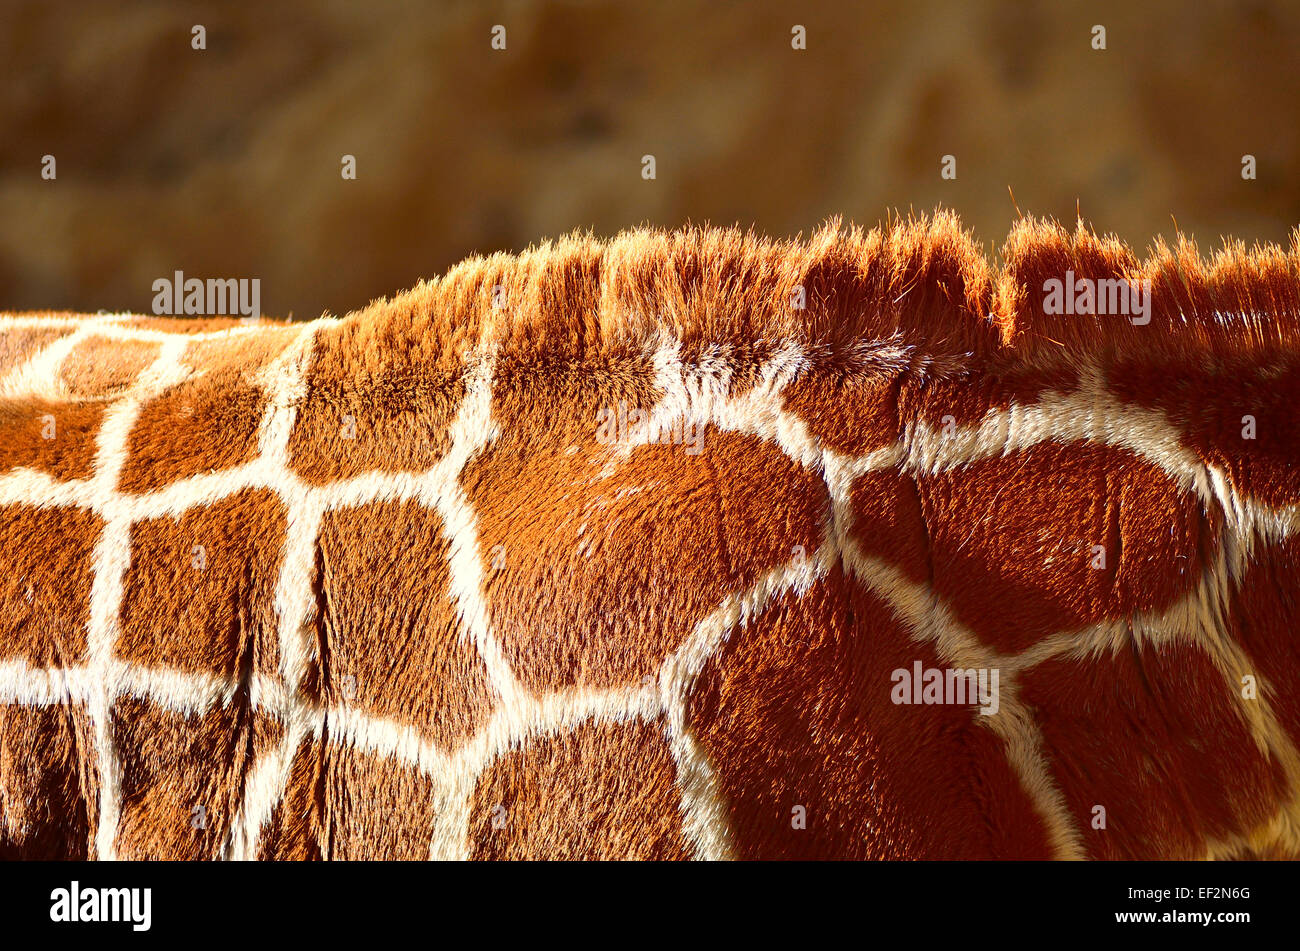 Giraffe shoulders with mane on back of neck - Stock Image